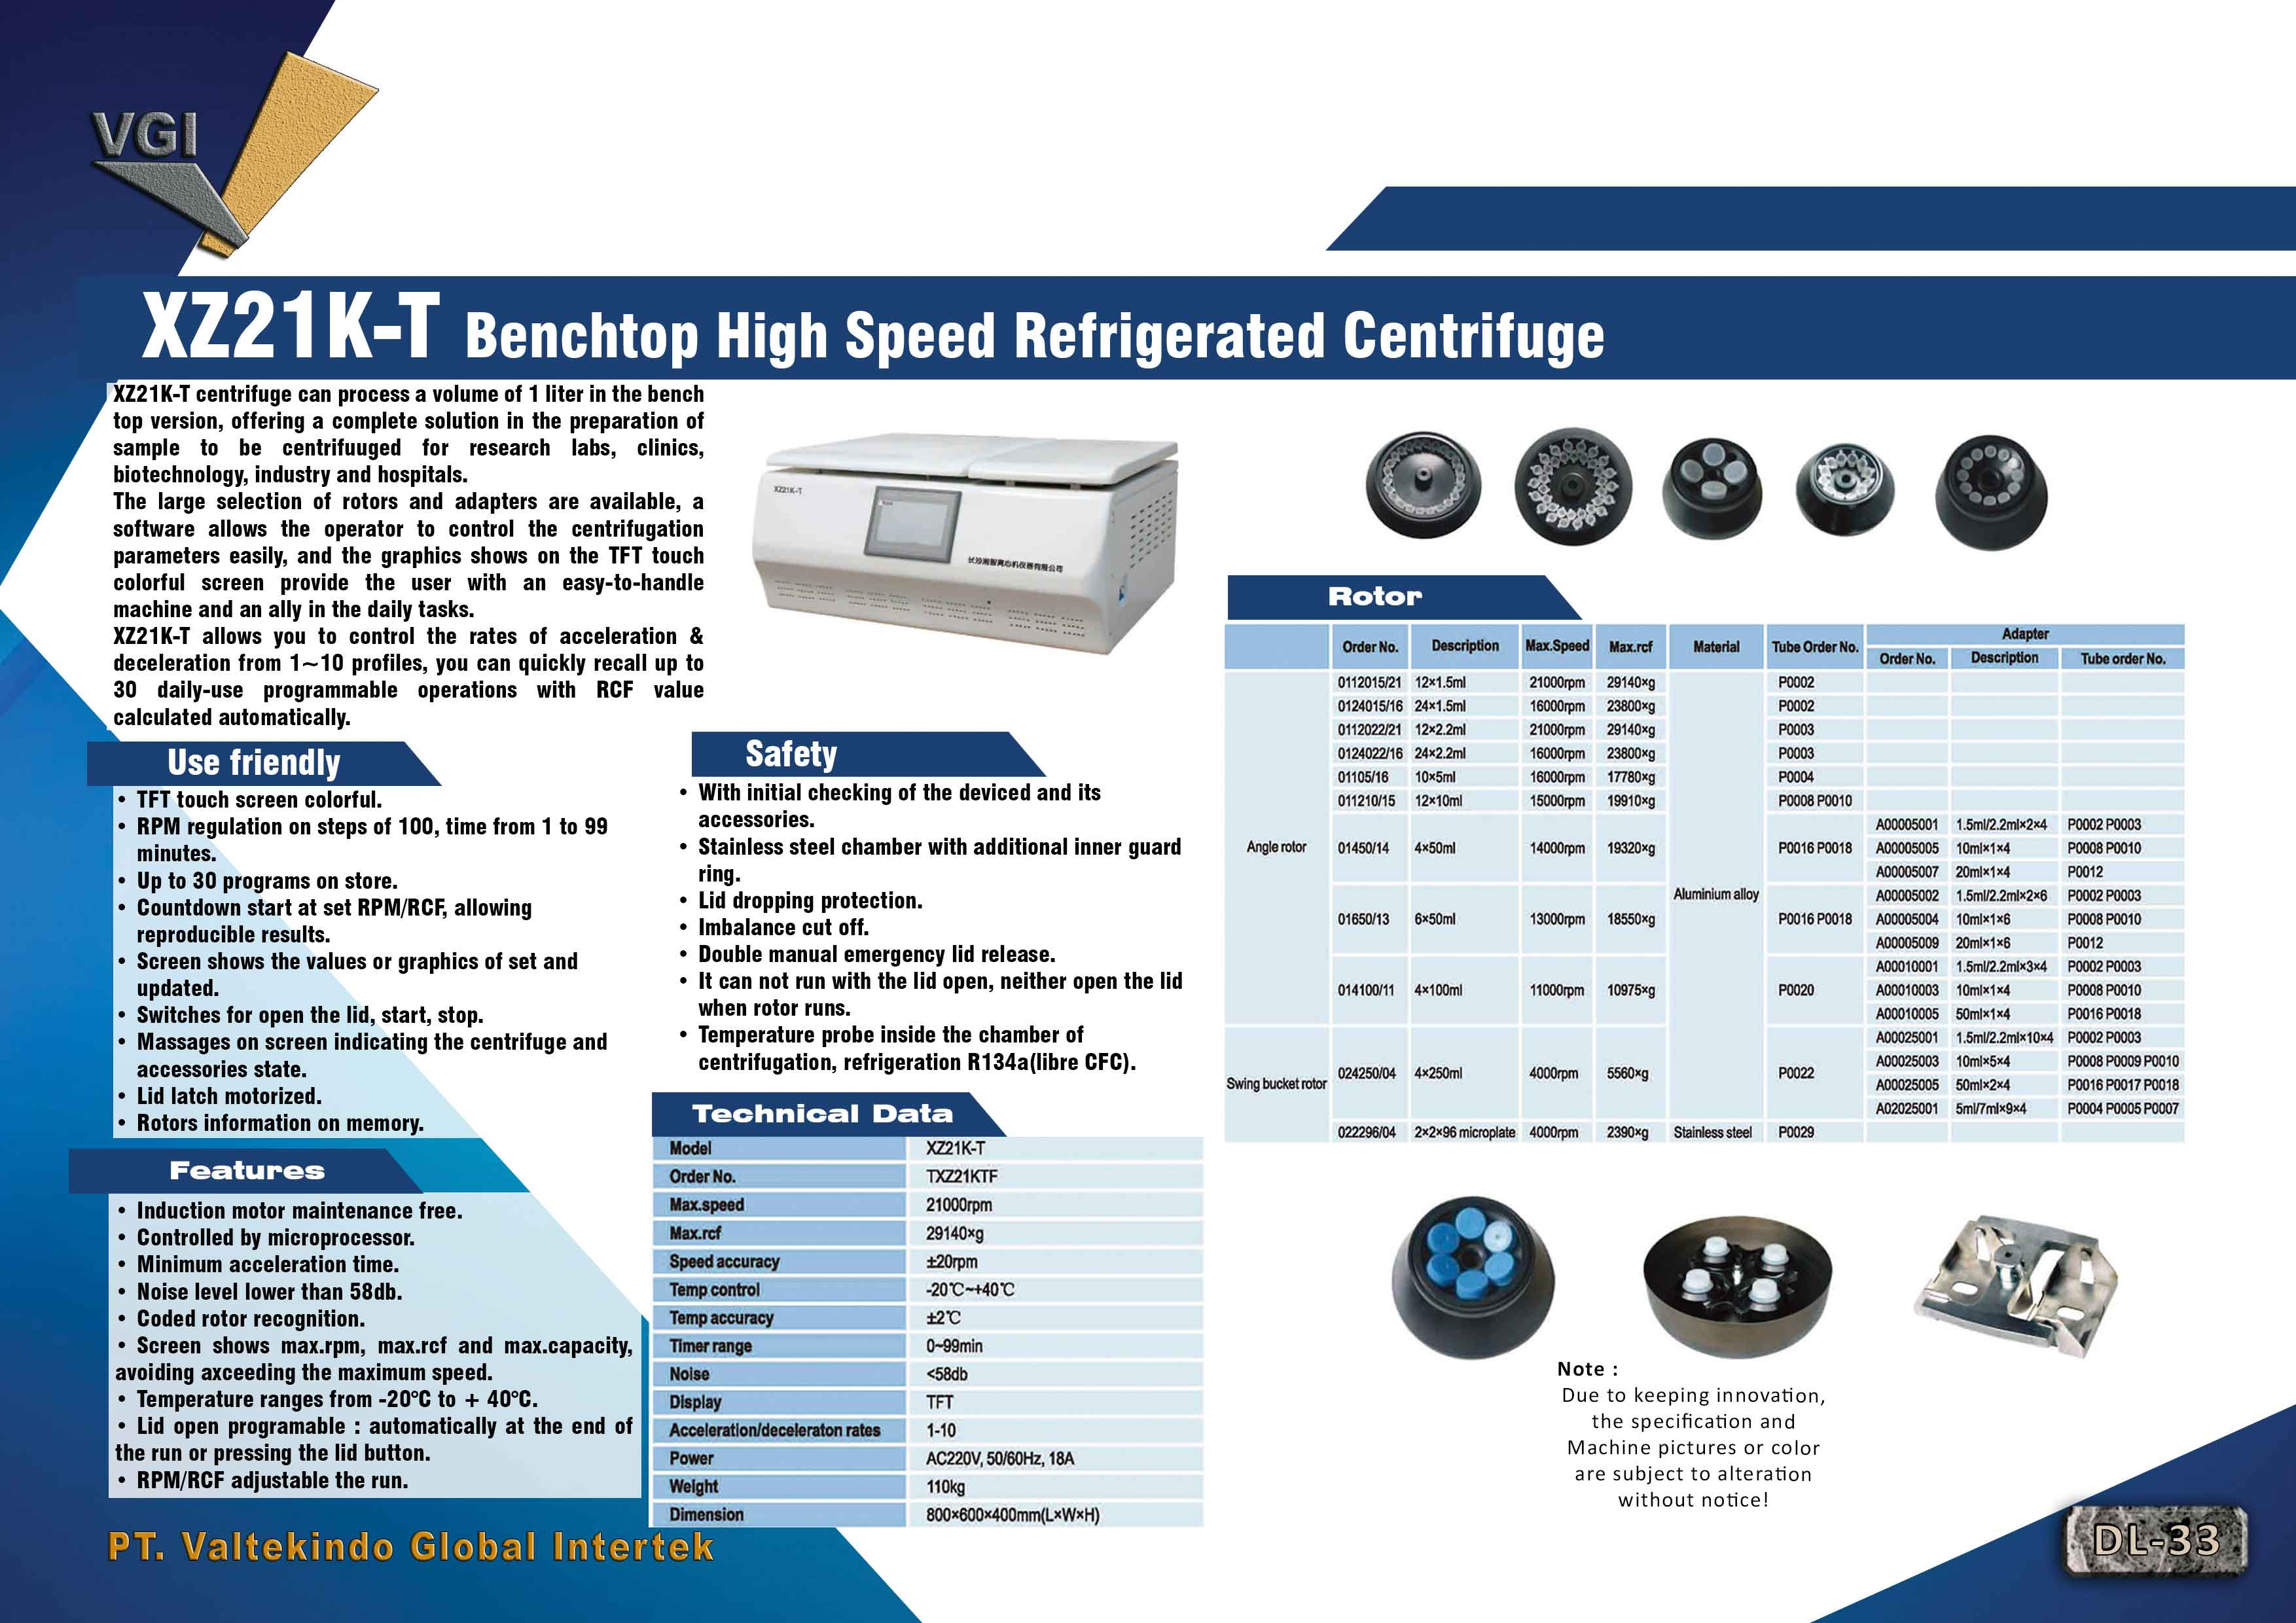 jual mesin Benchtop High Speed Refrigerated Centrifuge Benchtop High Speed Refrigerated Centrifuge